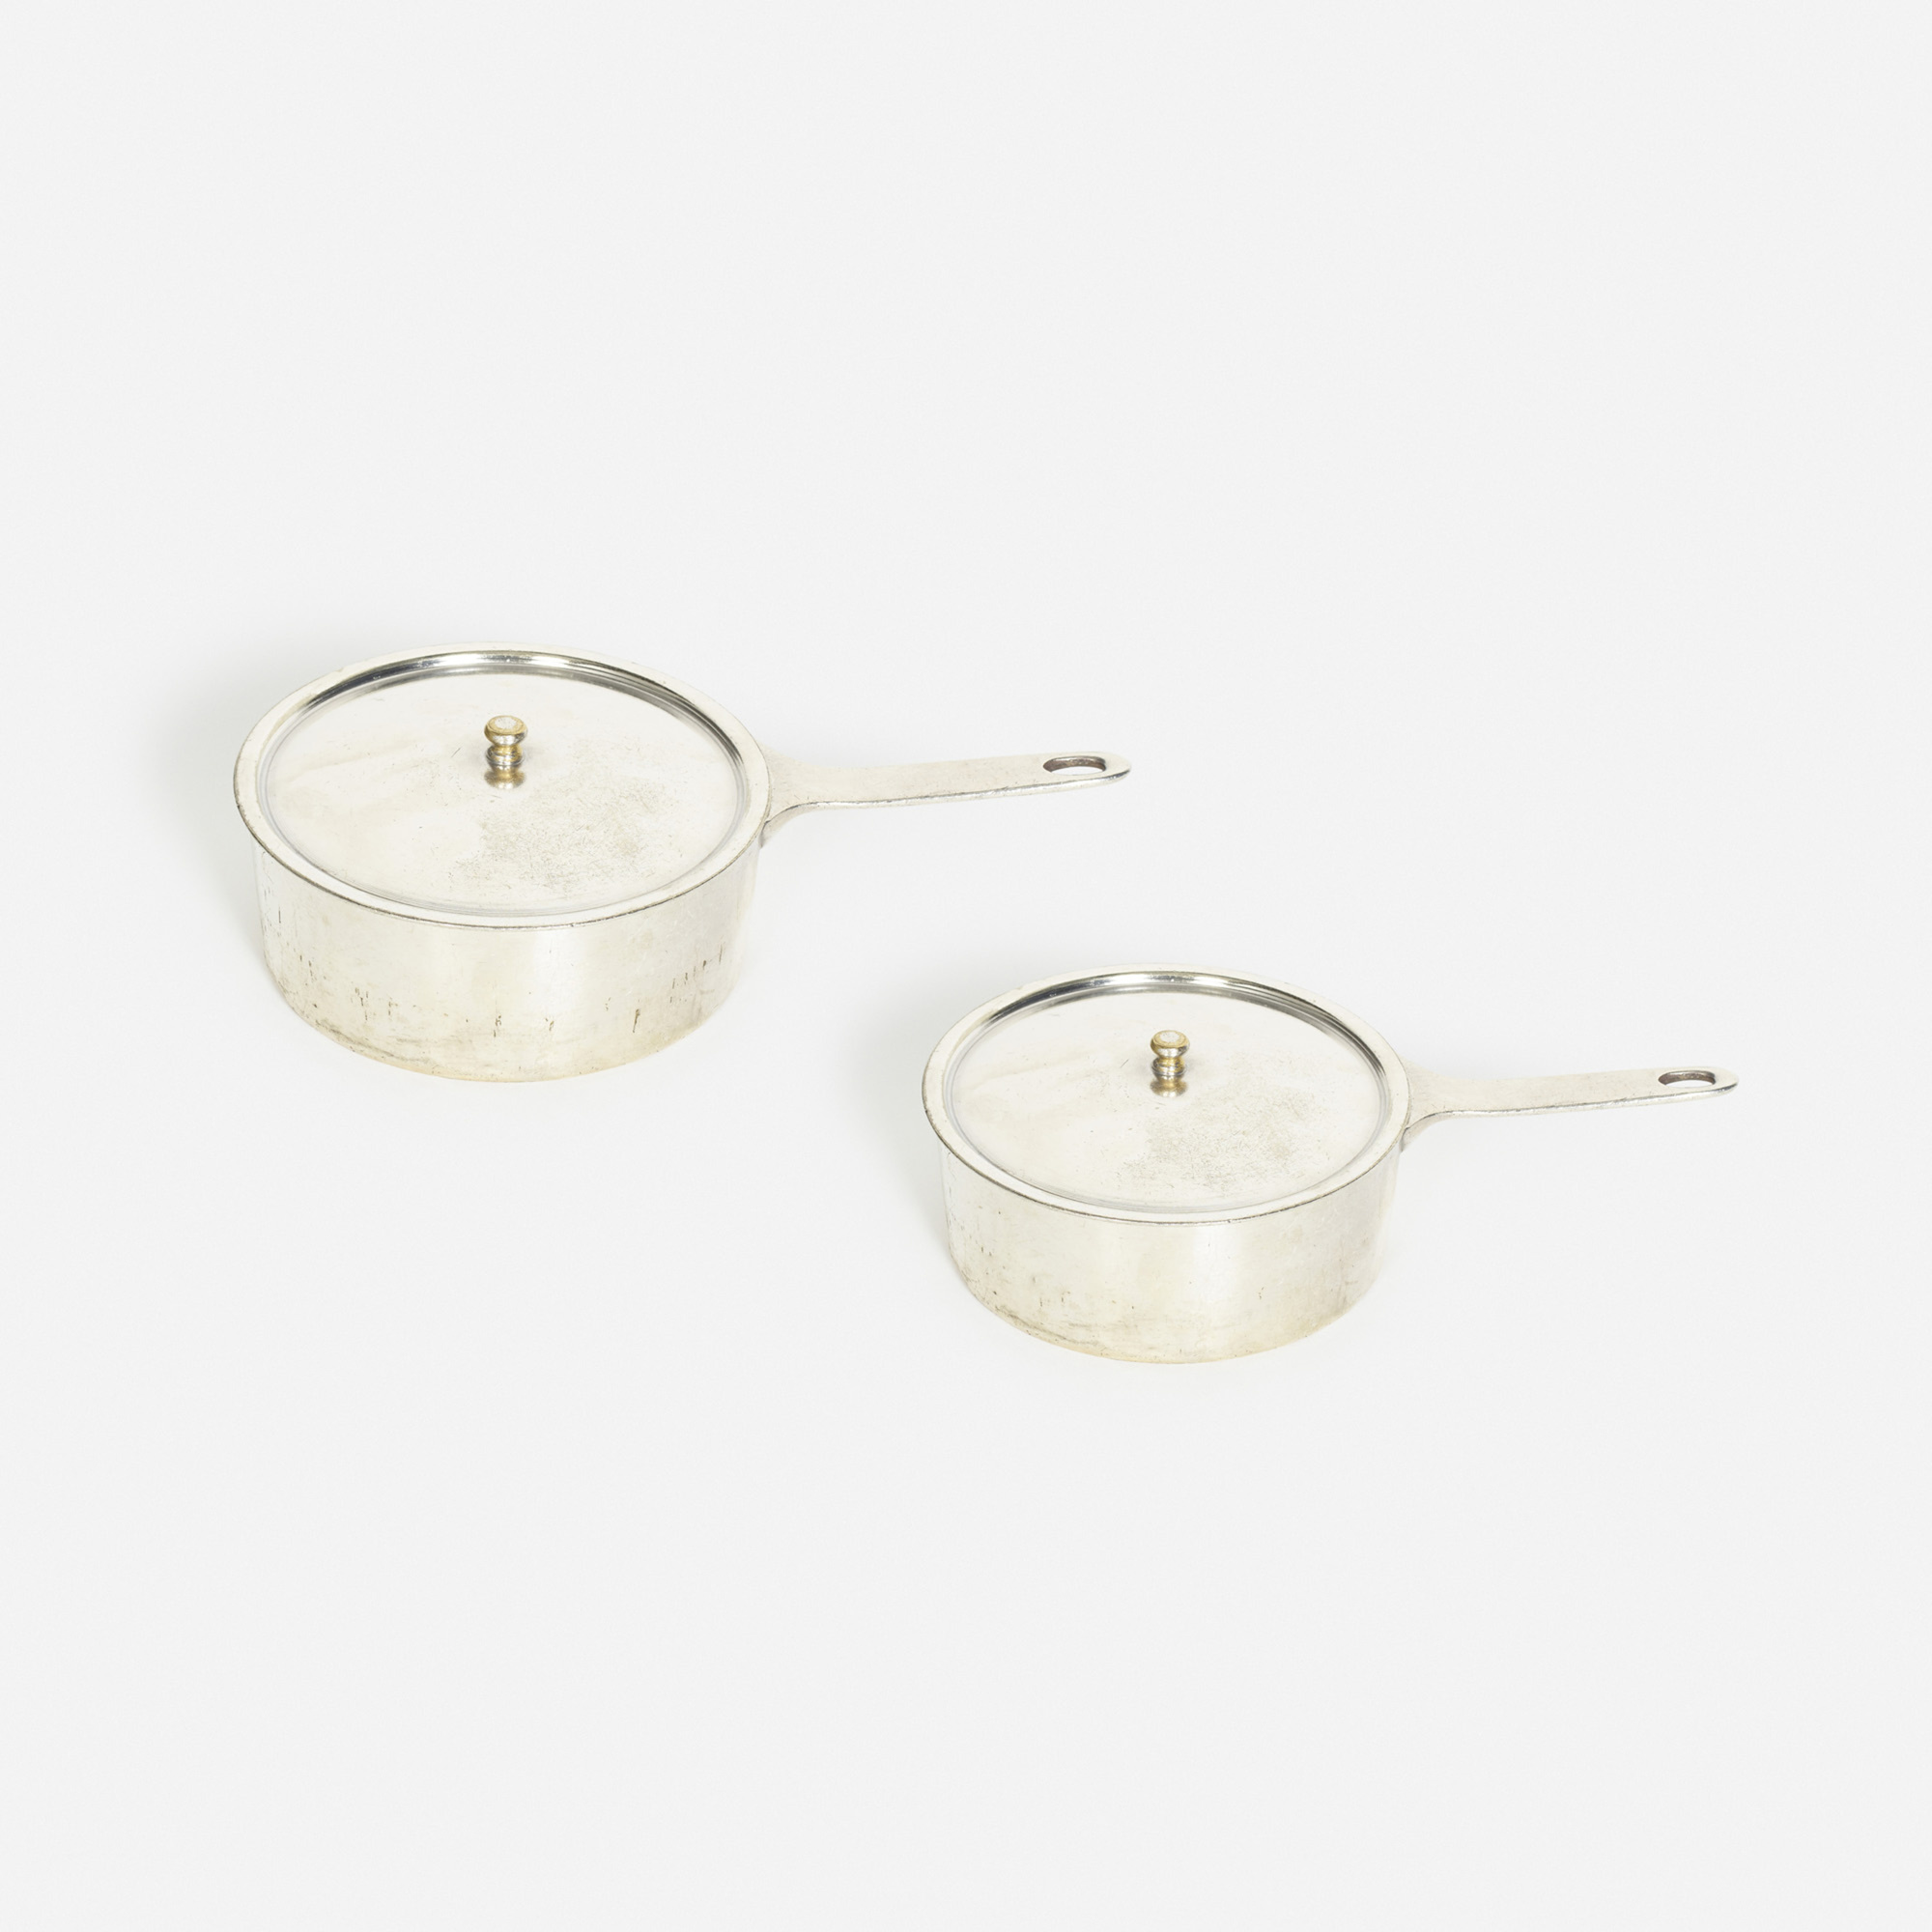 860: Garth and Ada Louise Huxtable / sauce pots from the kitchen of The Four Seasons, set of two (1 of 1)